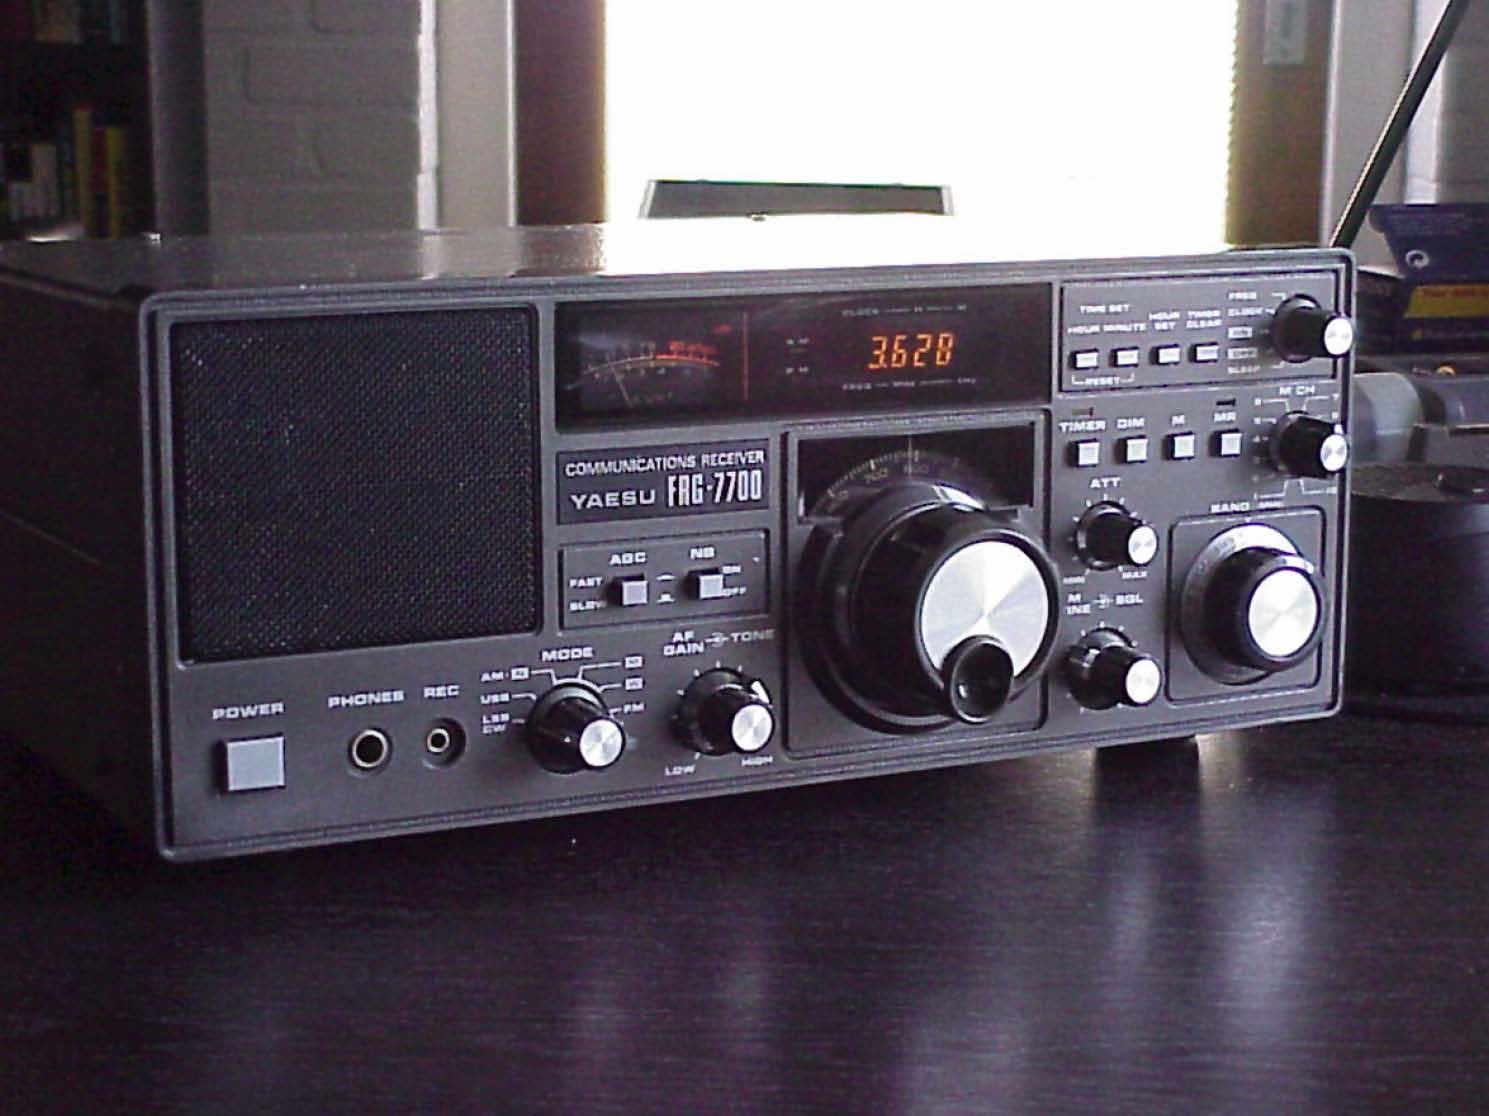 Click for larger view. Yaesu FRG-7700